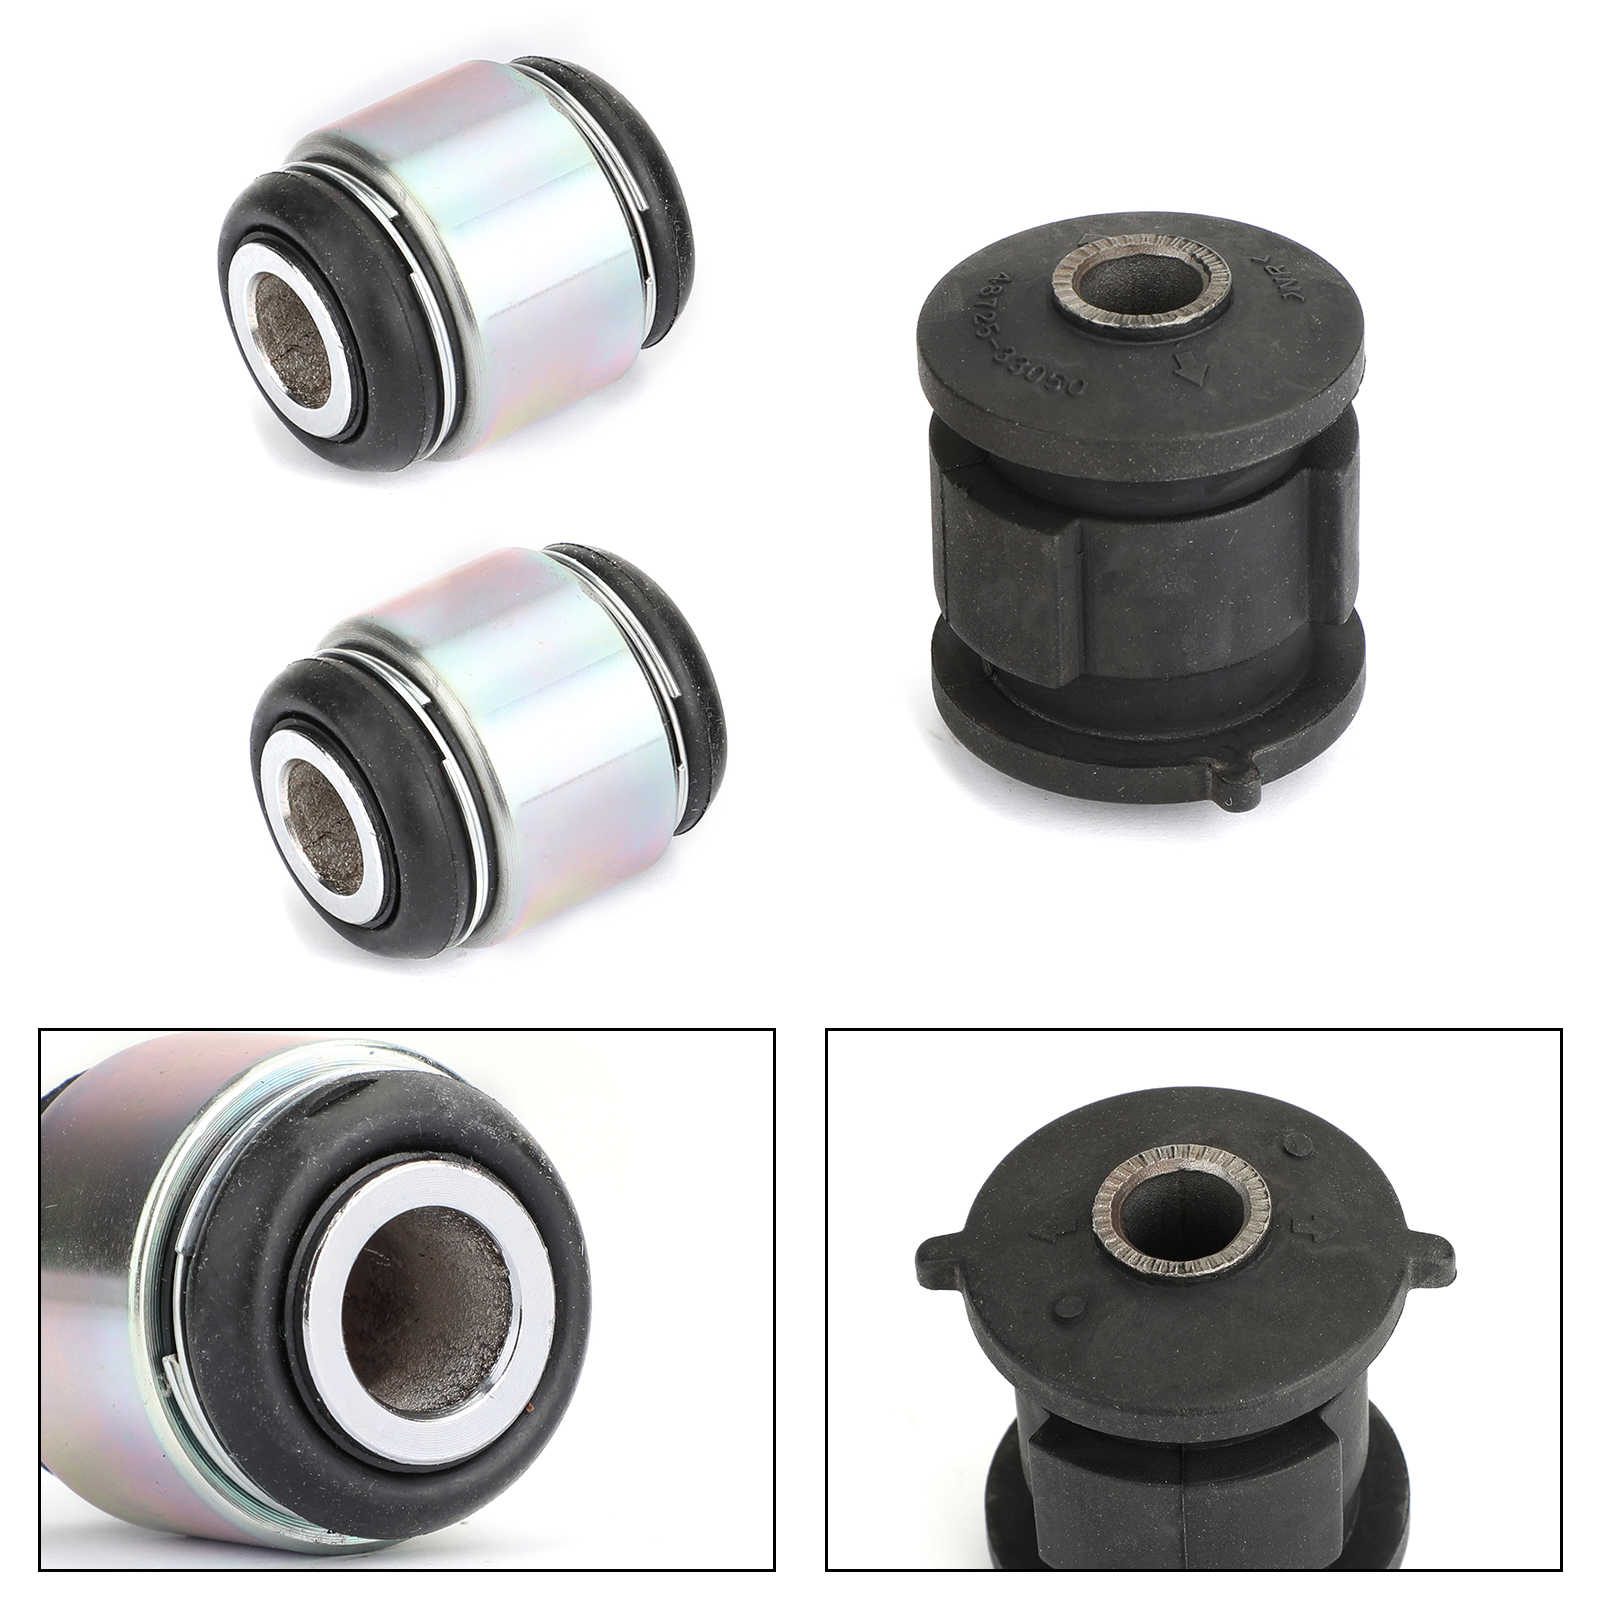 For 2011 Camry Hybrid GSV 50 Rear Arm Assembly Arm Knuckle Carrier Hub Bushing